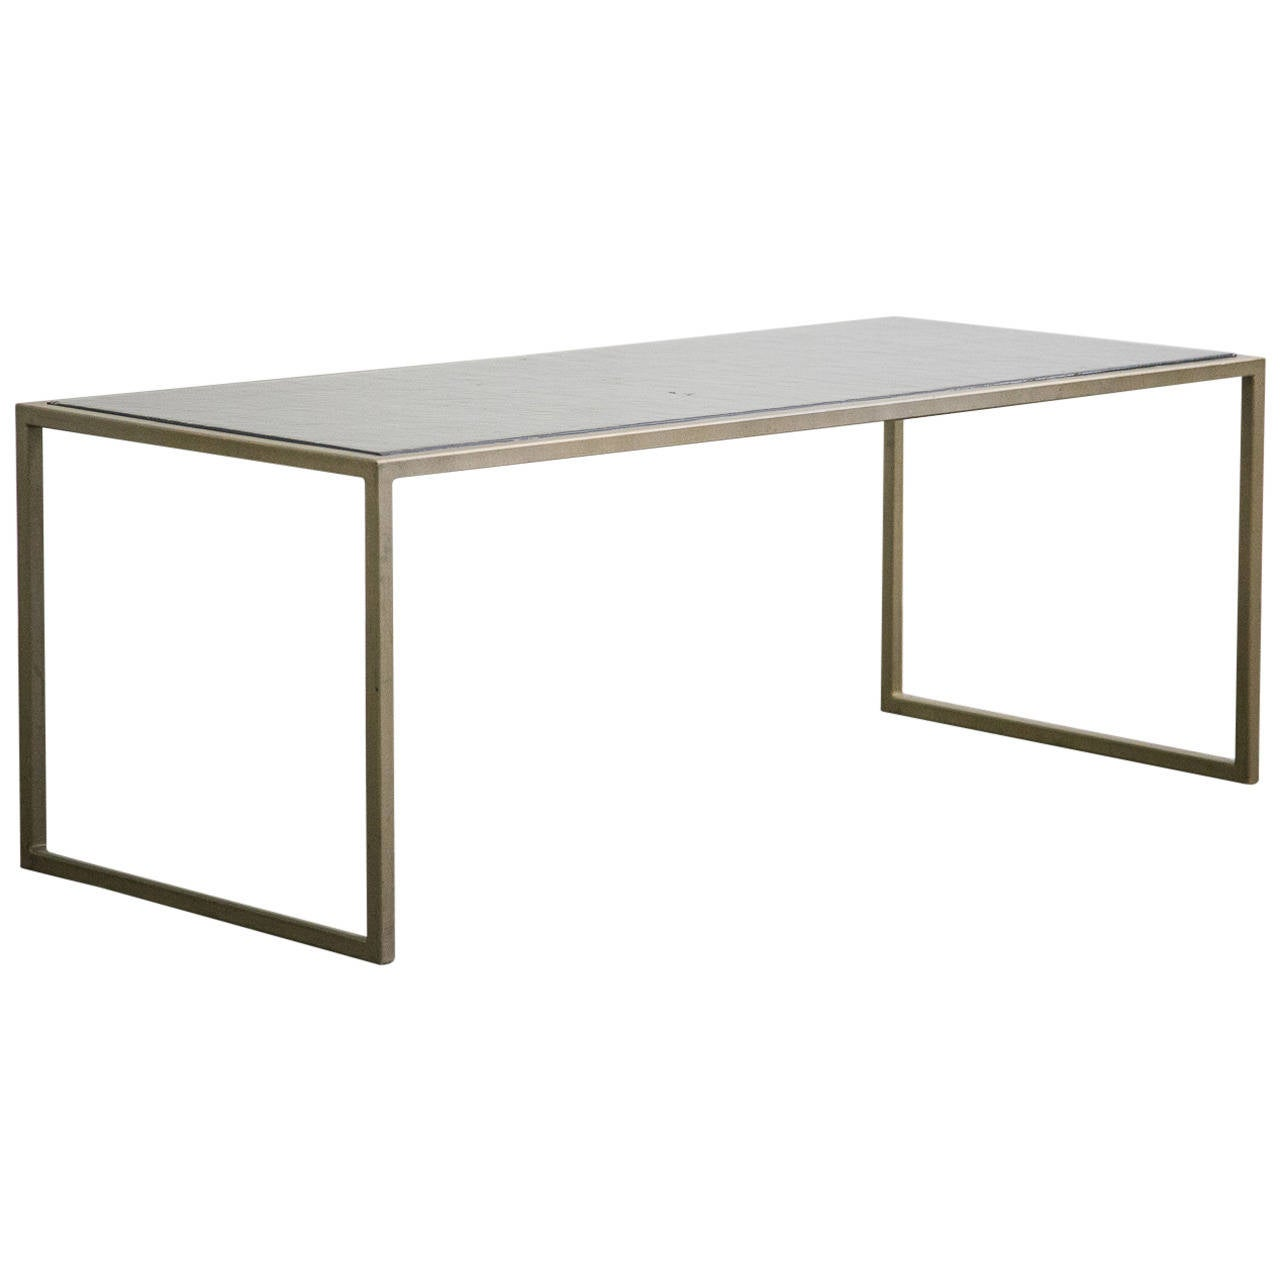 philippe starck designed coffee table paris circa 1985 for sale at 1stdibs On philippe starck tables